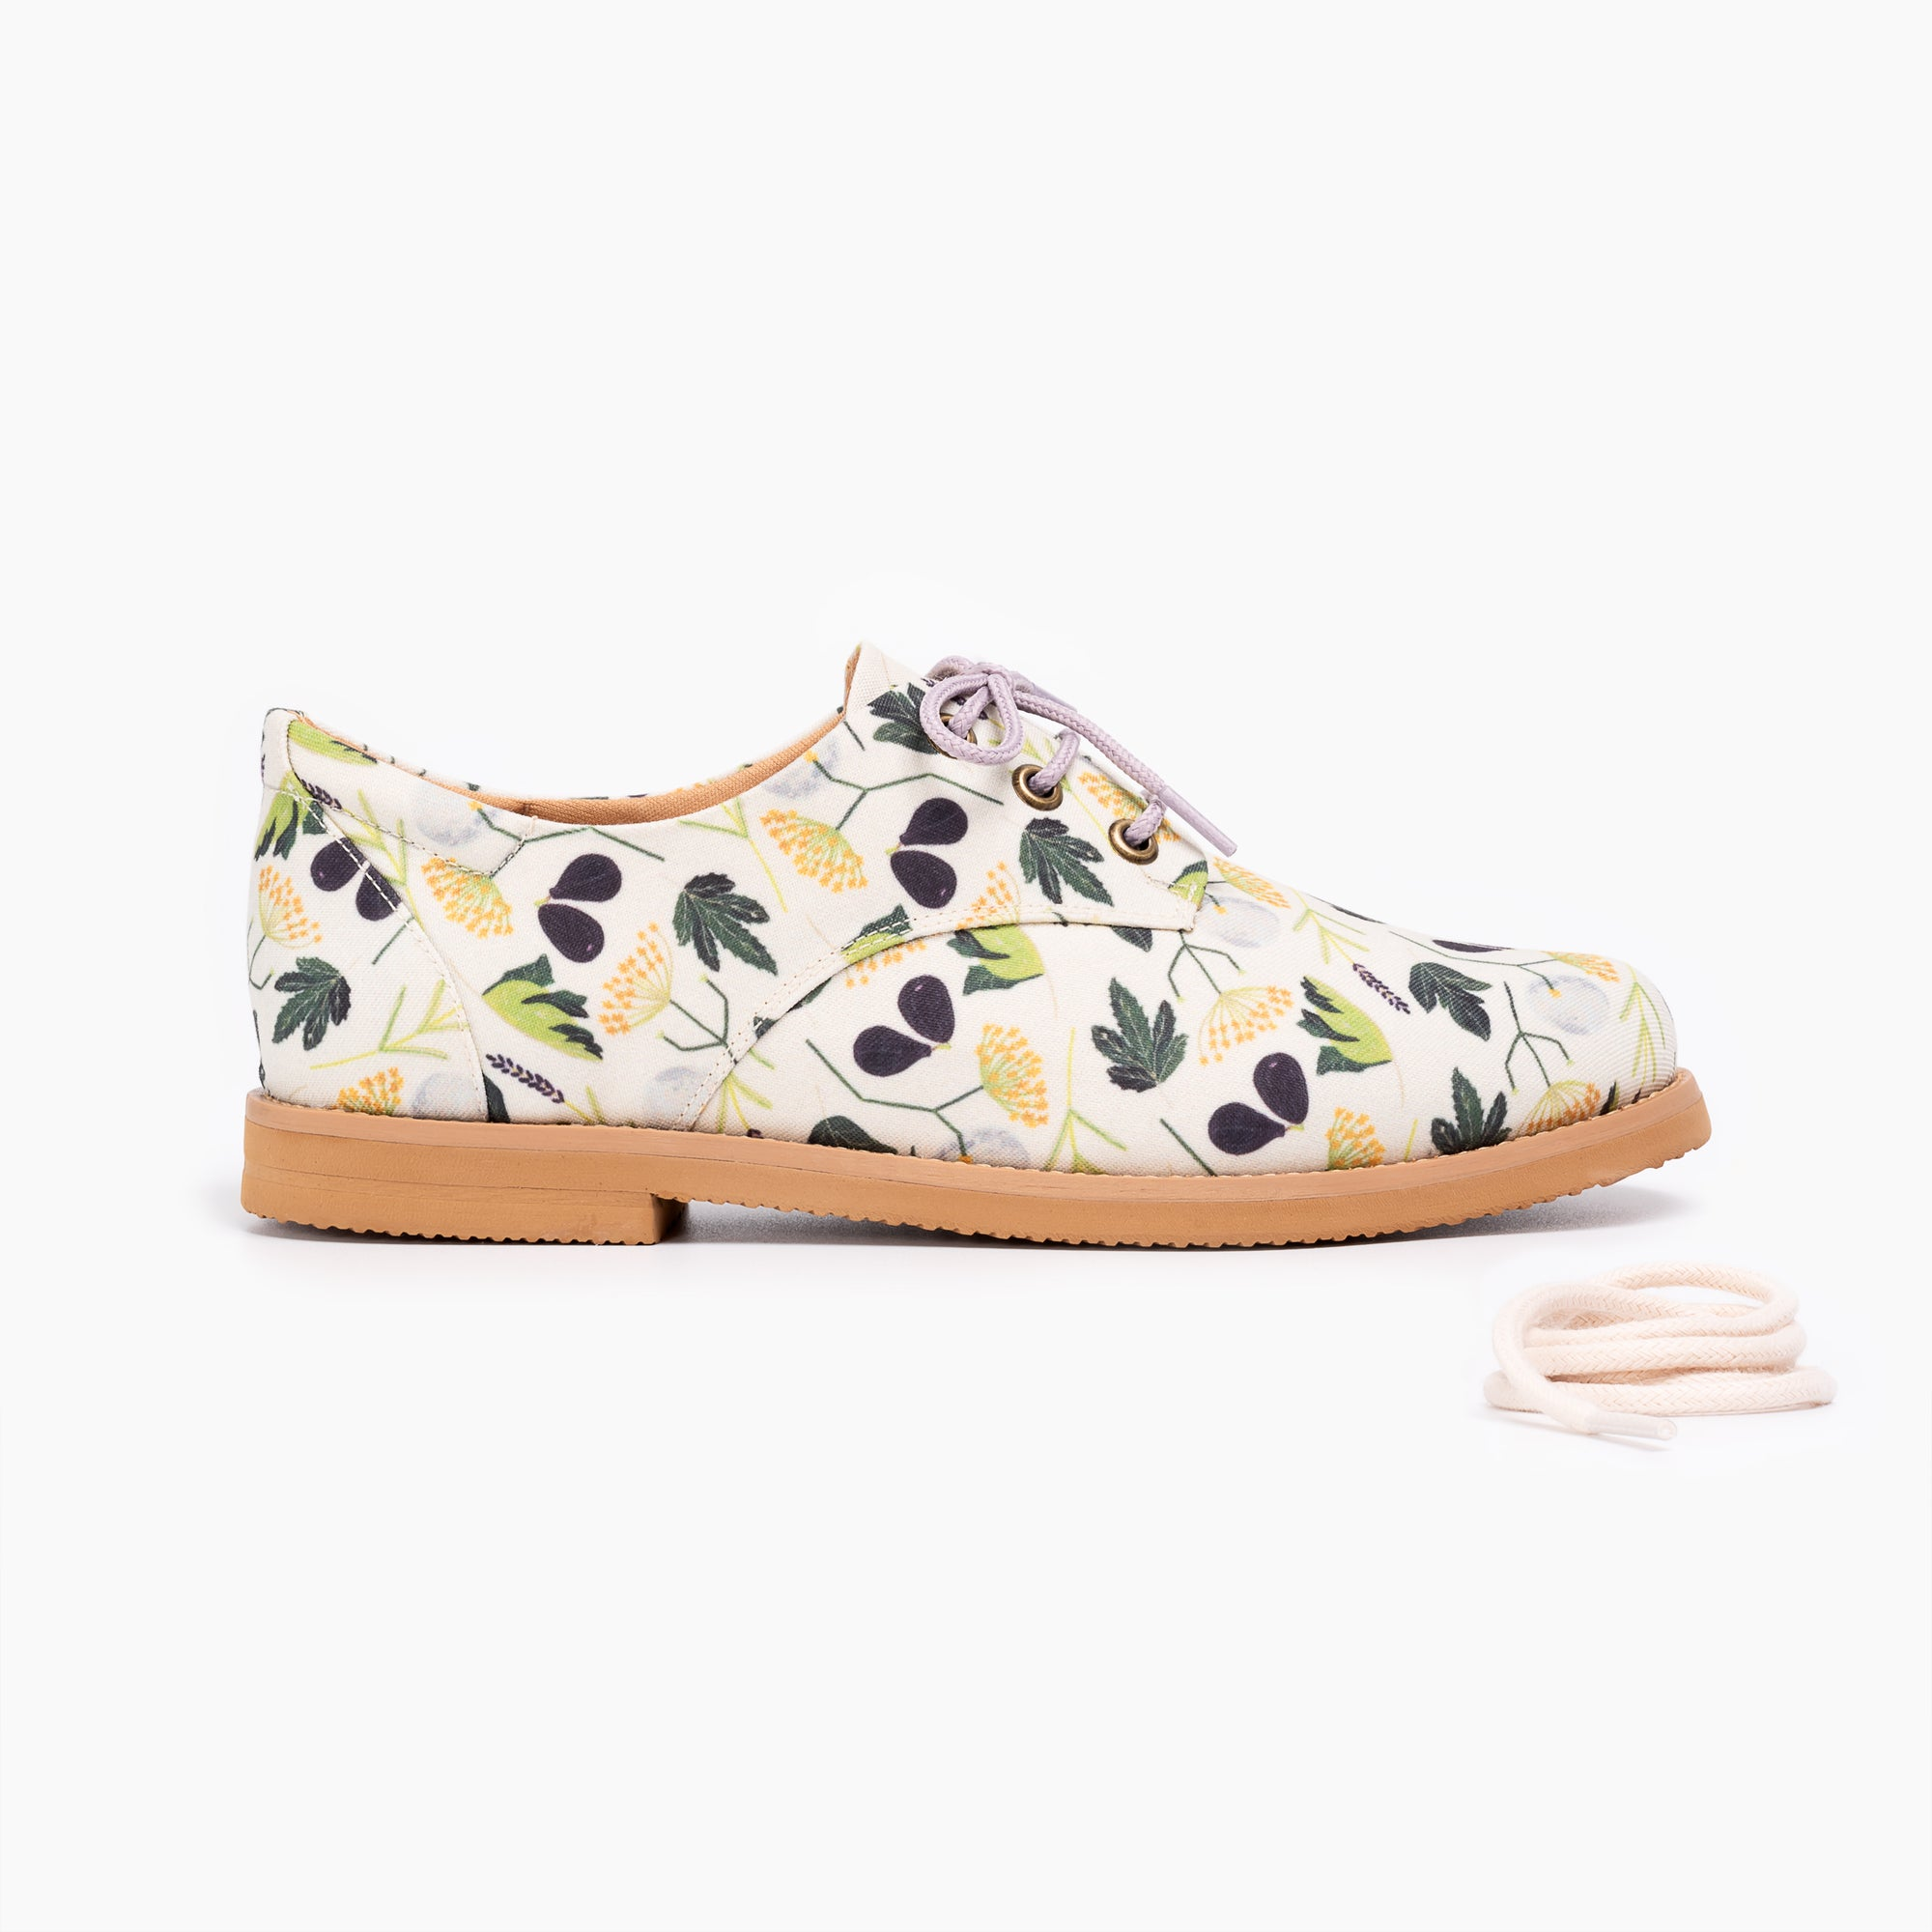 VIRGO OXFORD - Insecta Shoes